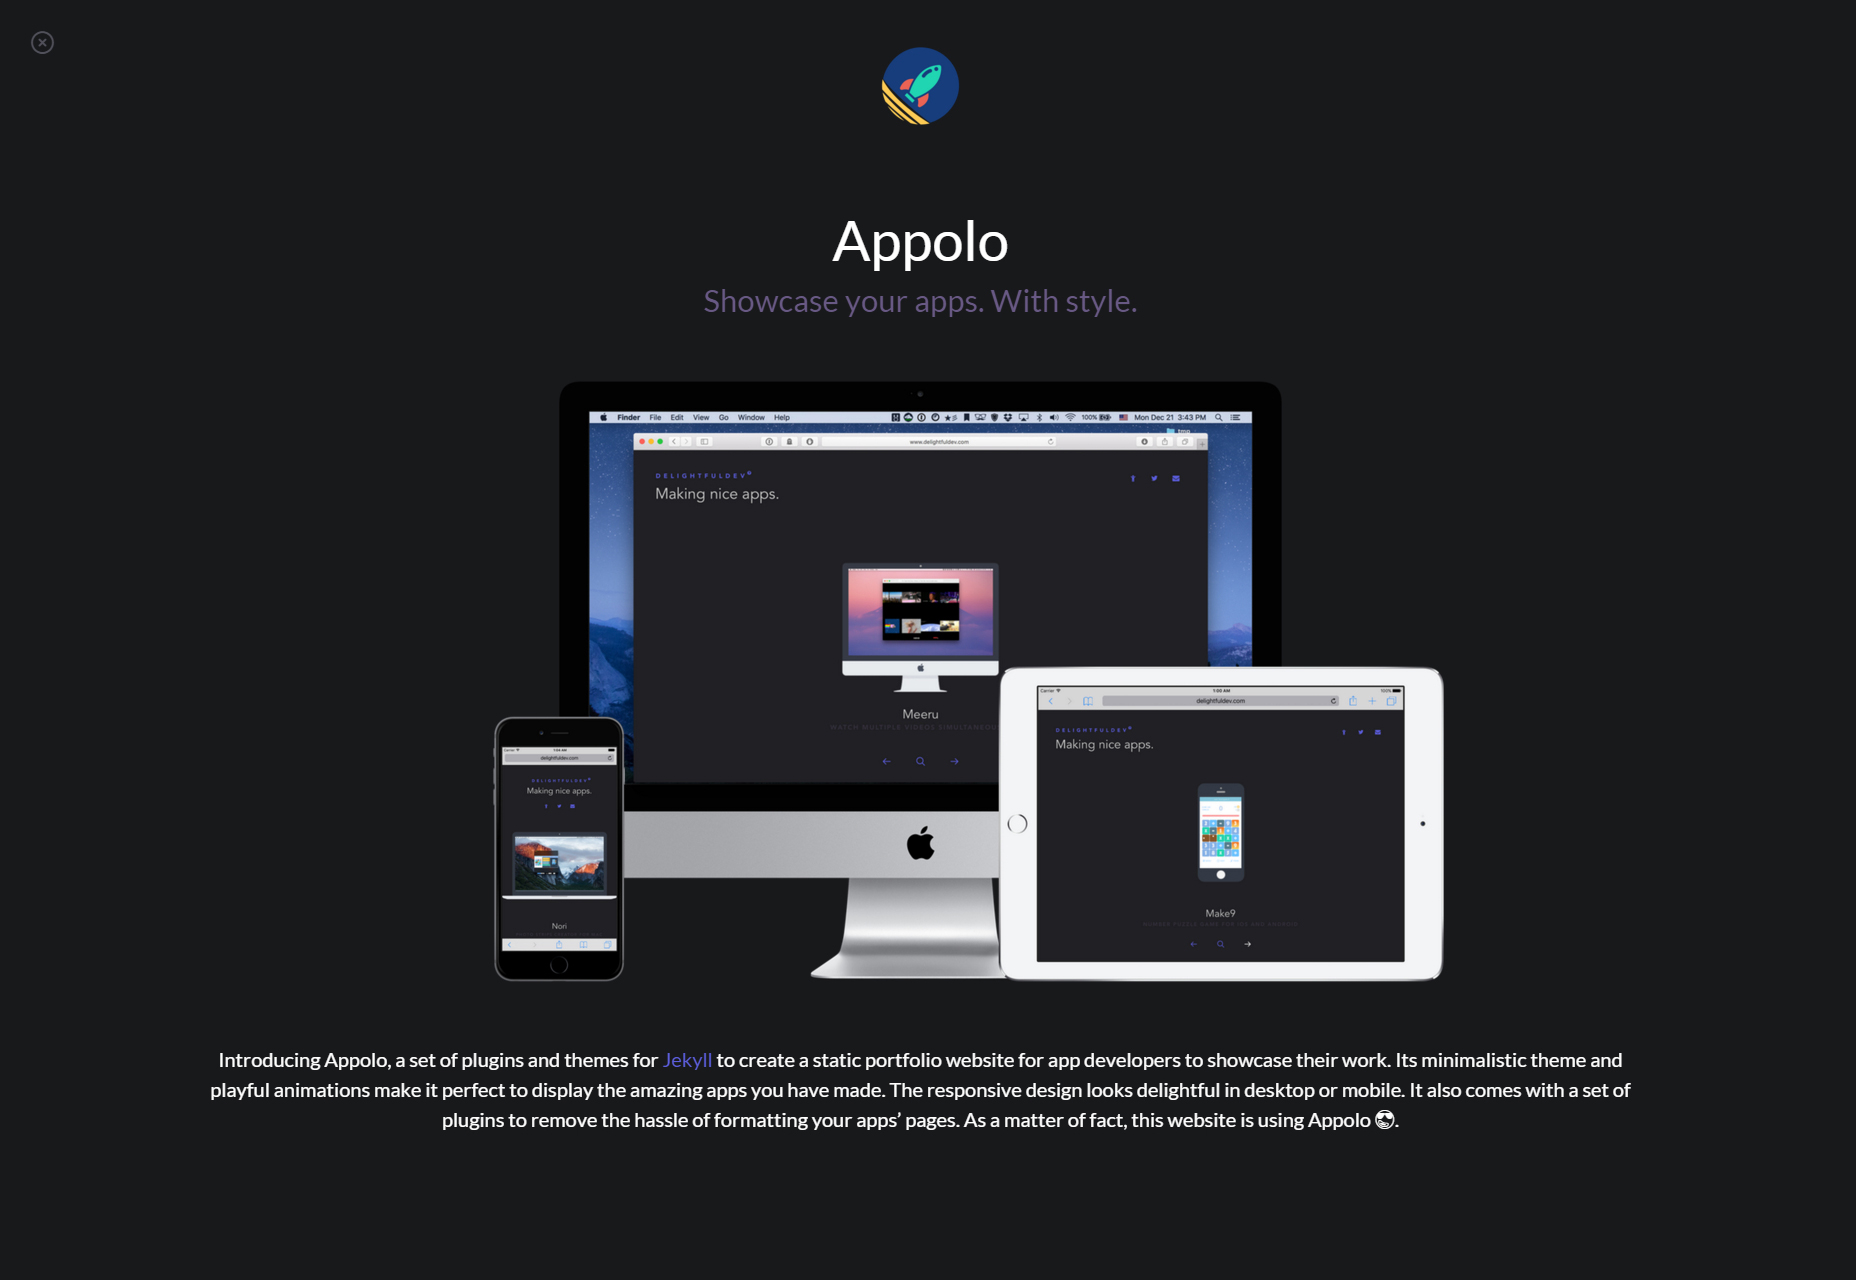 appolo-stylish-application-showcasing